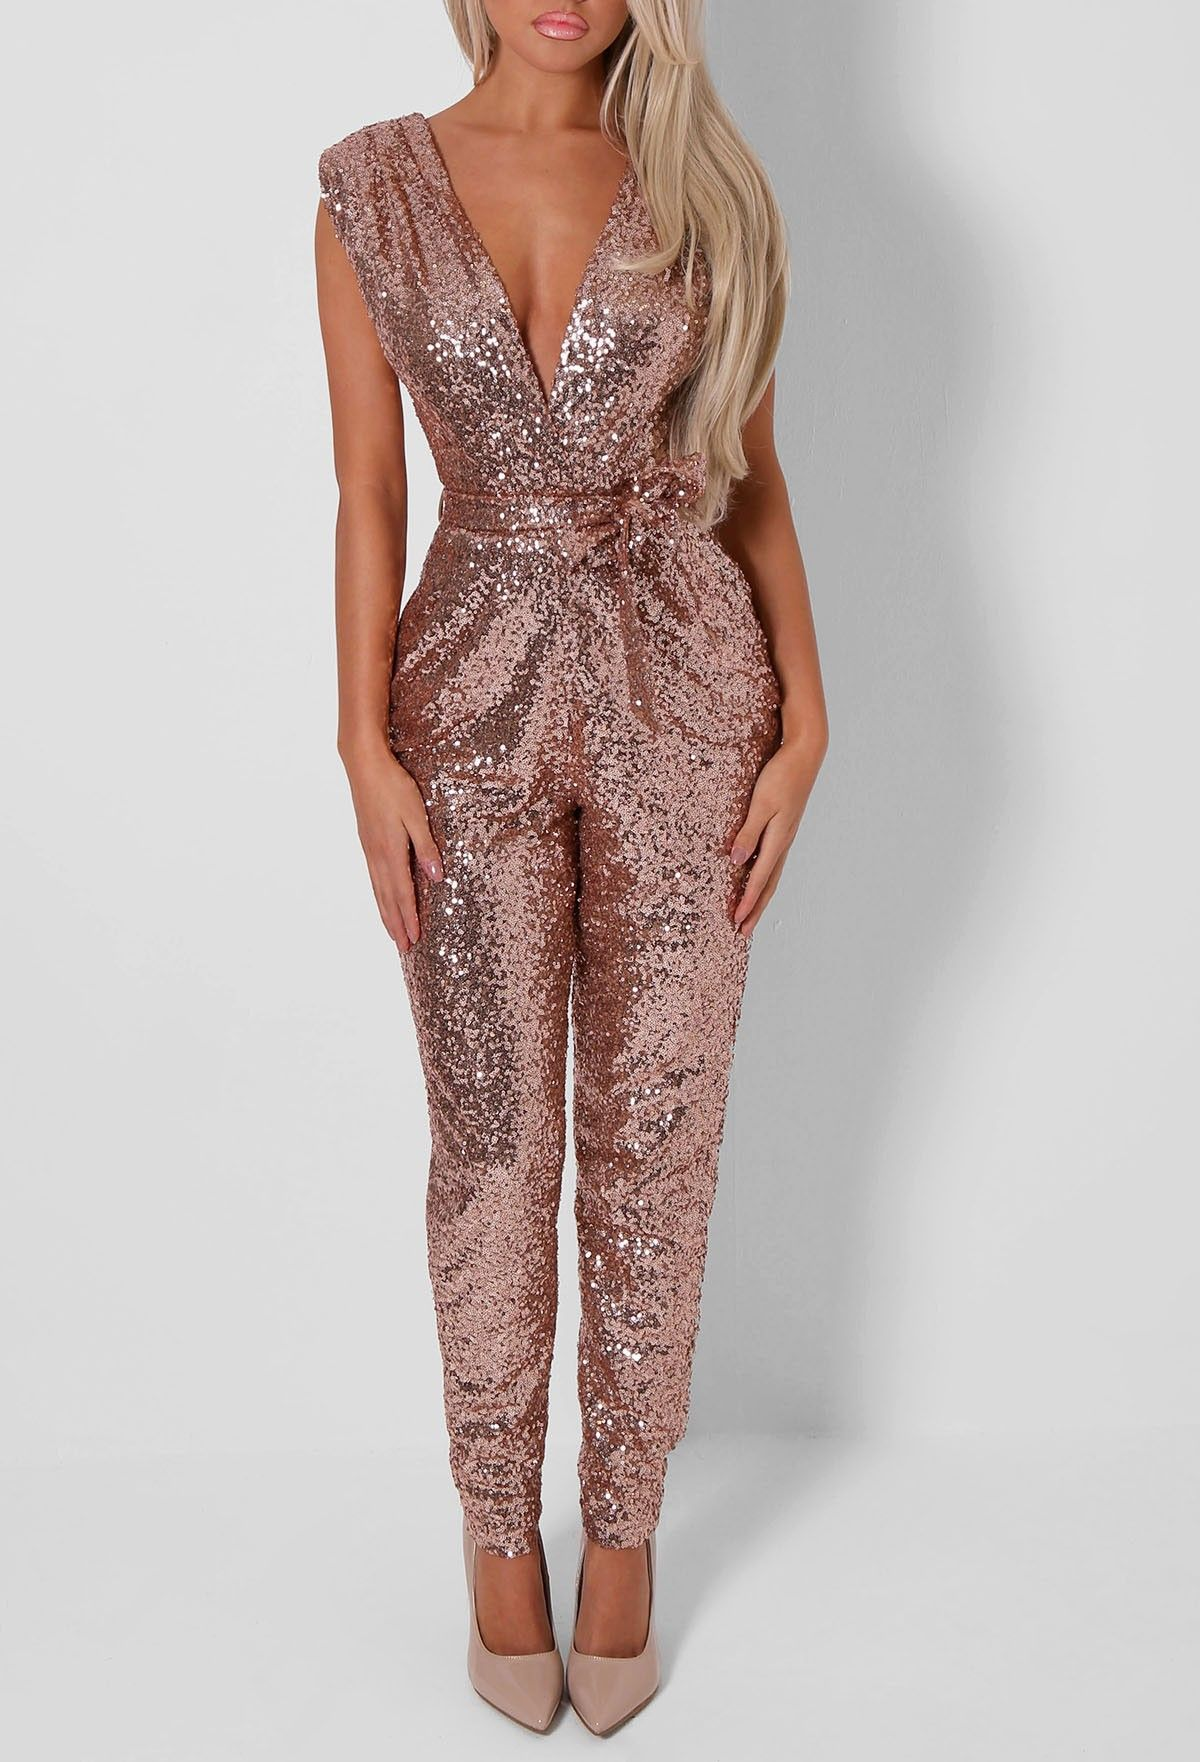 5b9ccc9ca70d Lulu Rose Gold Sequin Jumpsuit (Gold sequined jumpsuit by Cesar Galindo)